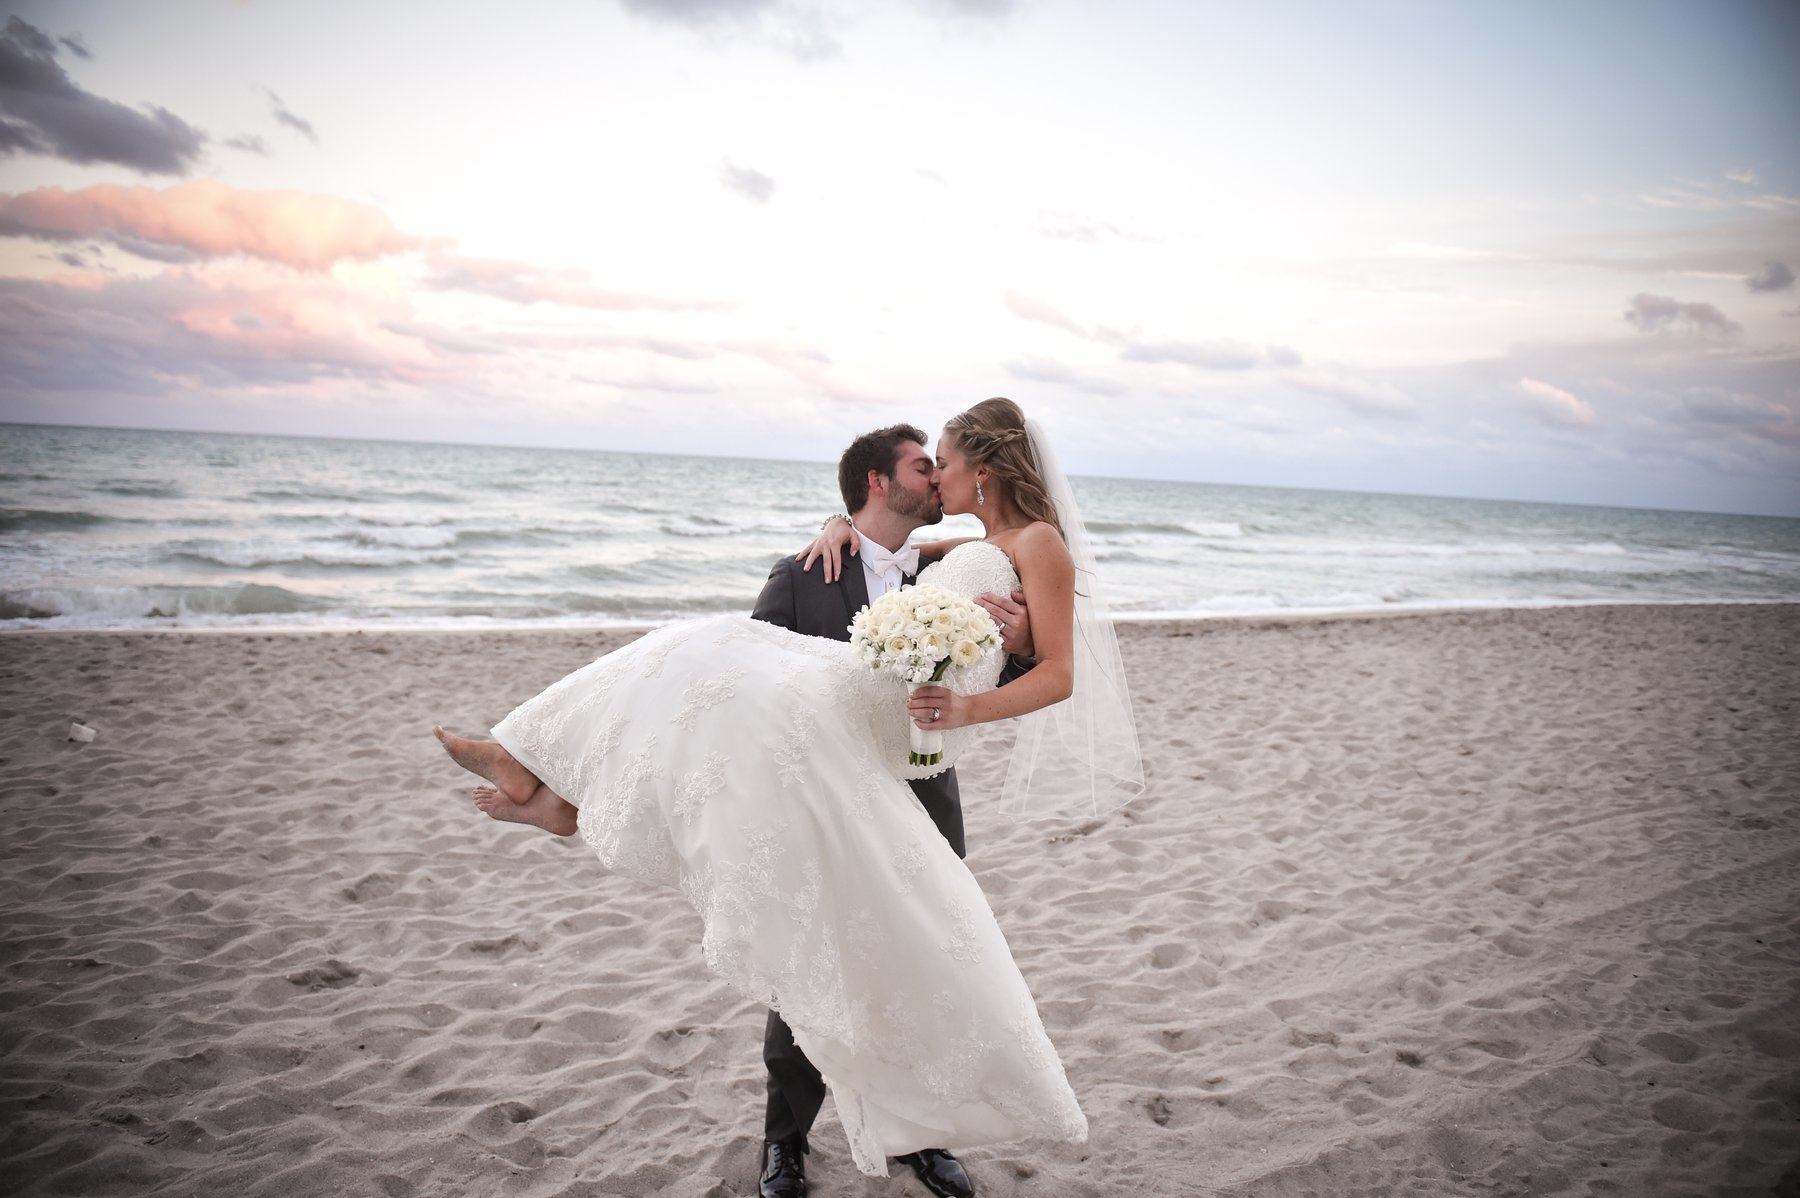 Groom Holding Bride at the Beach